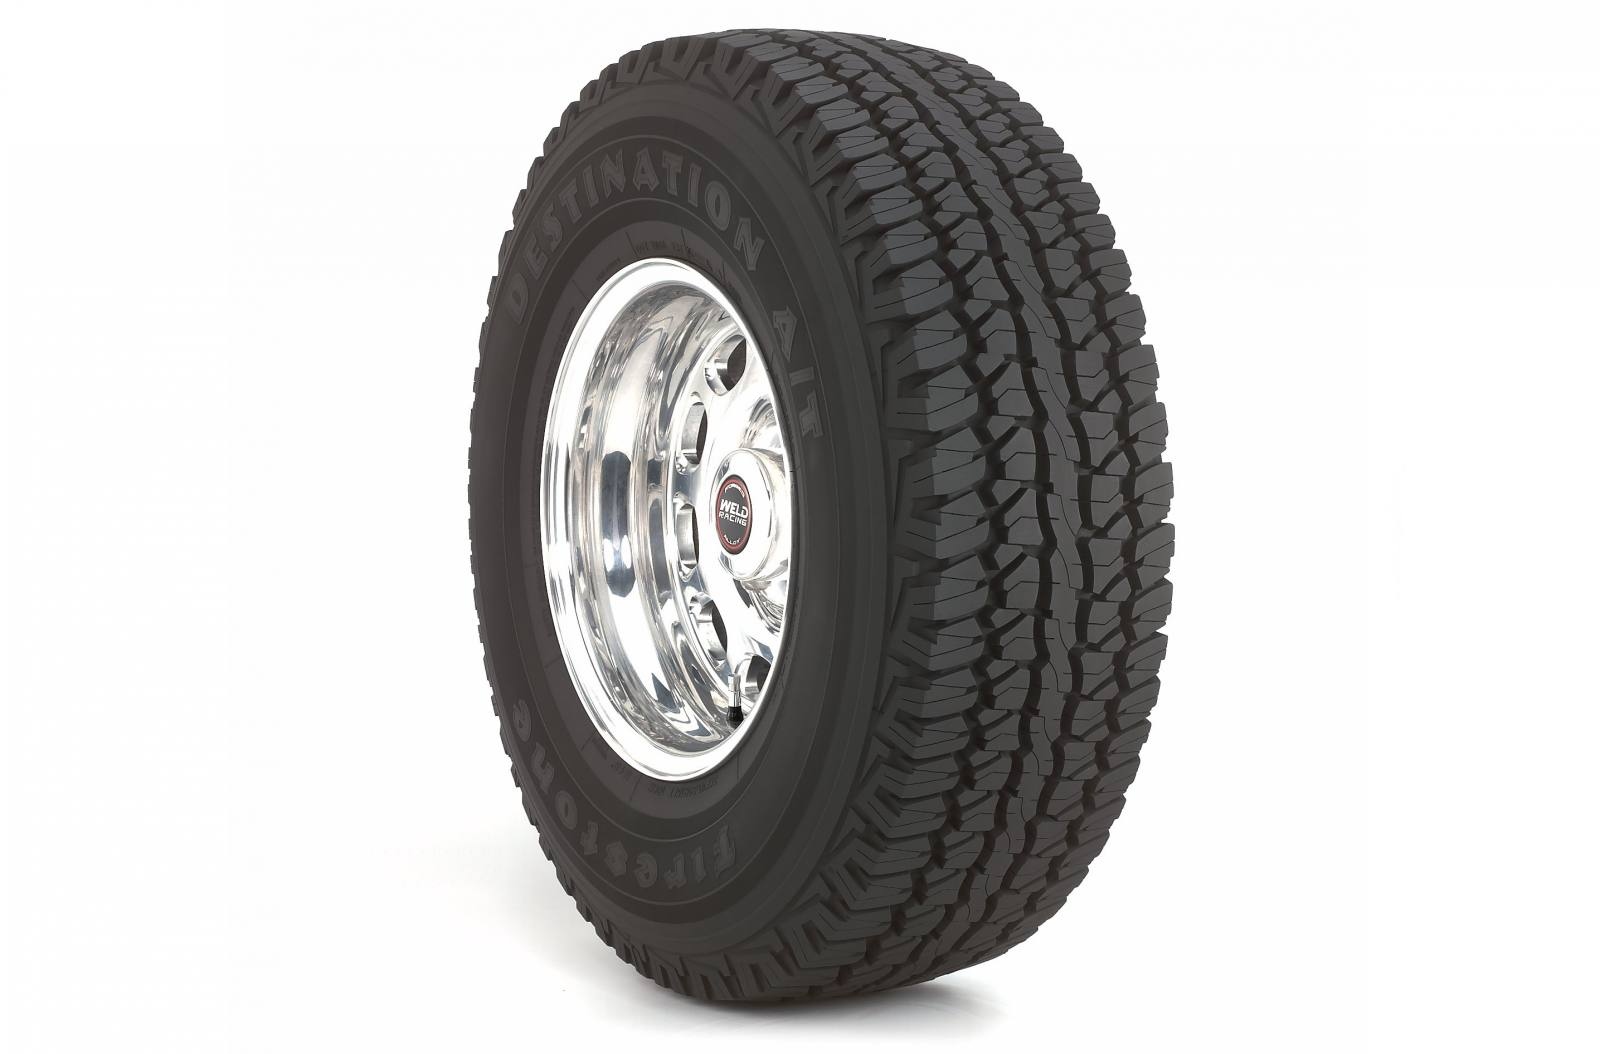 Destination At Tire For Sale In Easton Md Spurrys Tire Service